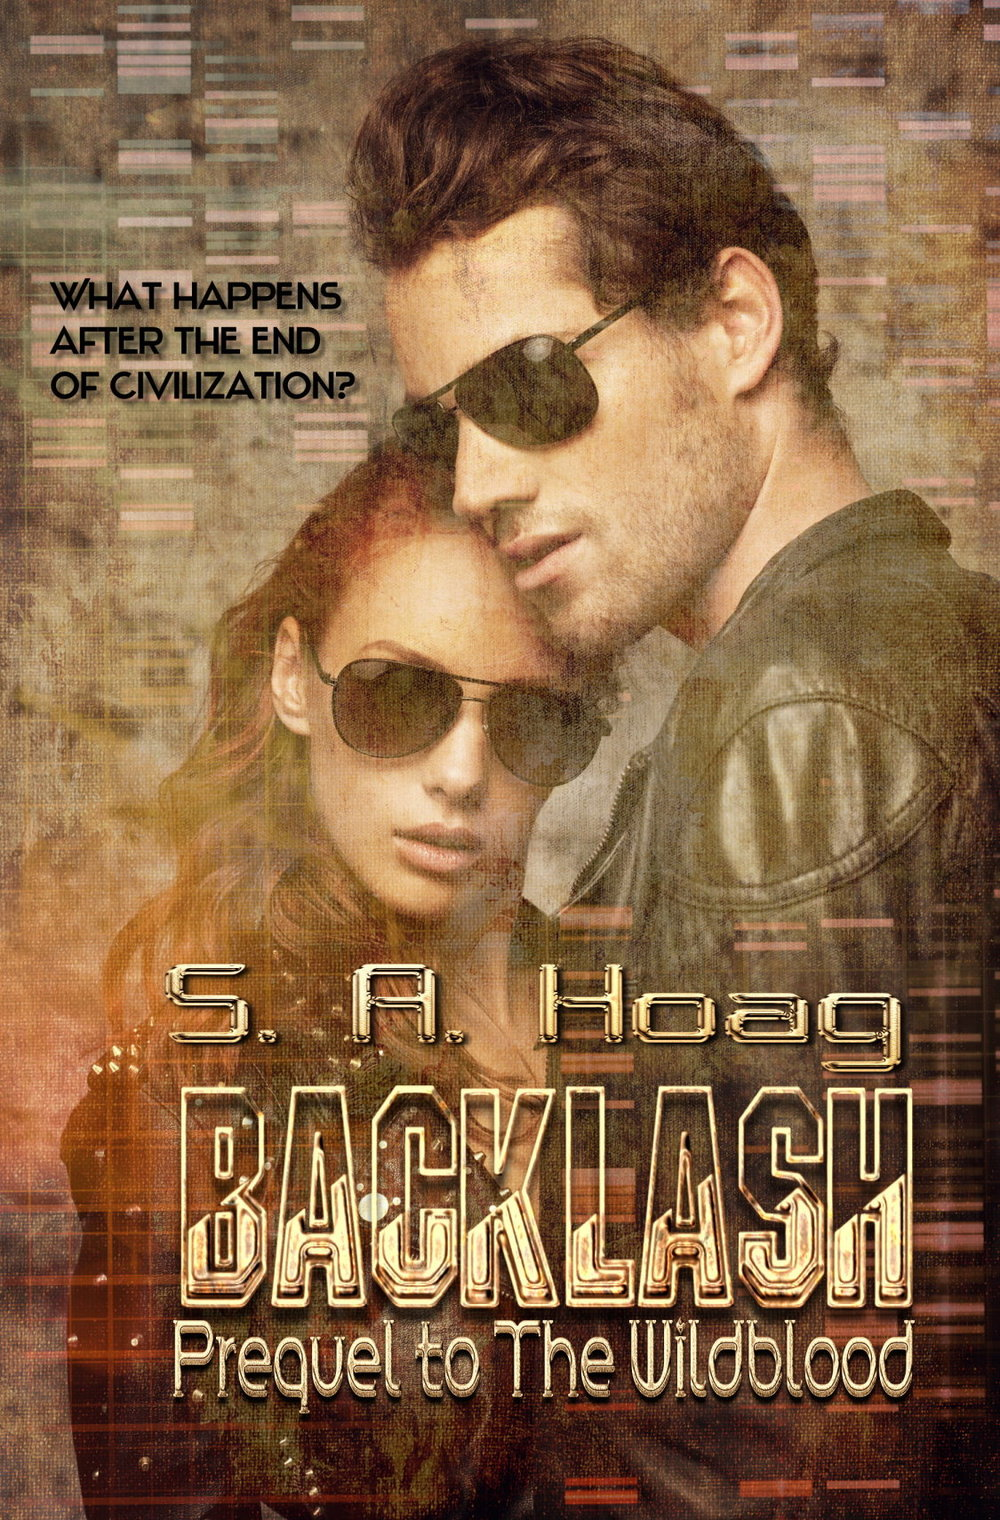 "Before Team Three, there was The Blackout.  Backlash , prequel to The Wildblood.   https://www.amazon.com/gp/product/B0104VMFI4   https://www.kobo.com/us/en/ebook/backlash-39   https://itunes.apple.com/us/book/id1012444527   https://www.barnesandnoble.com/w/backlash-s-a-hoag/1127070486   https://www.books2read.com/u/3JBdB3  https://www.smashwords.com/books/view/686270 http://www.topaz08.com/Backlash.html    All are available in paperback and eBooks  –    www.topaz08.com   Excerpt  (Backlash: Prequel to The WIldblood)   ""Shannon,"" her radio crackled static, snapping her out of a restless sleep. It was Wade on his private channel.   ""Go ahead,"" she answered groggily. Her watch read 9:30 pm and she was supposed to go on duty at 2:00 am. An hour - she'd been asleep an hour.   ""Gear up. I'll be there in five minutes to get you.""   ""What's going on?"" she wondered, rubbing her eyes.   ""Don't ask, just do.""   He didn't sound like they might be playing wargames. Shan moved.   Her mother was in the kitchen. Deirdre Allen was five foot three, with pale blond hair, hazel eyes, and was one of The Vista's actual doctors. She'd been twenty-nine when civilization ended. ""The hospital just called me in,"" she announced. ""Are you on-call?""   ""I am now. Wade didn't tell me why.""   ""War games?""   ""No,"" Shan told her. ""Not this time. I know you don't like carrying, but I think this is serious. Take a sidearm, Mom, please.""   Deirdre nodded. ""For your peace of mind I will."" She knew how to use it; she'd been forced to in the past and hoped she never would again. ""Whatever it is, be careful.""   ""I am, and Wade wouldn't let me get away with anything else.""   She hugged her. ""I mean it.""   ""I'll see you in the morning,"" Shan said, hearing a car. ""That's Wade. If he tells me it's practice, I'll let you know."" She didn't think it was likely, but he'd fooled her before.   The moment she dropped into the passenger seat, she knew it was real. ""Can you tell me now?"" She'd dressed in winter camos with body armor, both Sigs and a boot gun, clips in all her pockets, plus an array of knives. Her pack held spare ammo, food rations and various bits of survival equipment.   He glanced sideways at her, heading towards Station Two with a purpose. ""We lost a Scout at Wisdom about an hour ago.""  ""Lost?"" she repeated, not expecting it.   ~ ~ ~ ~ ~"